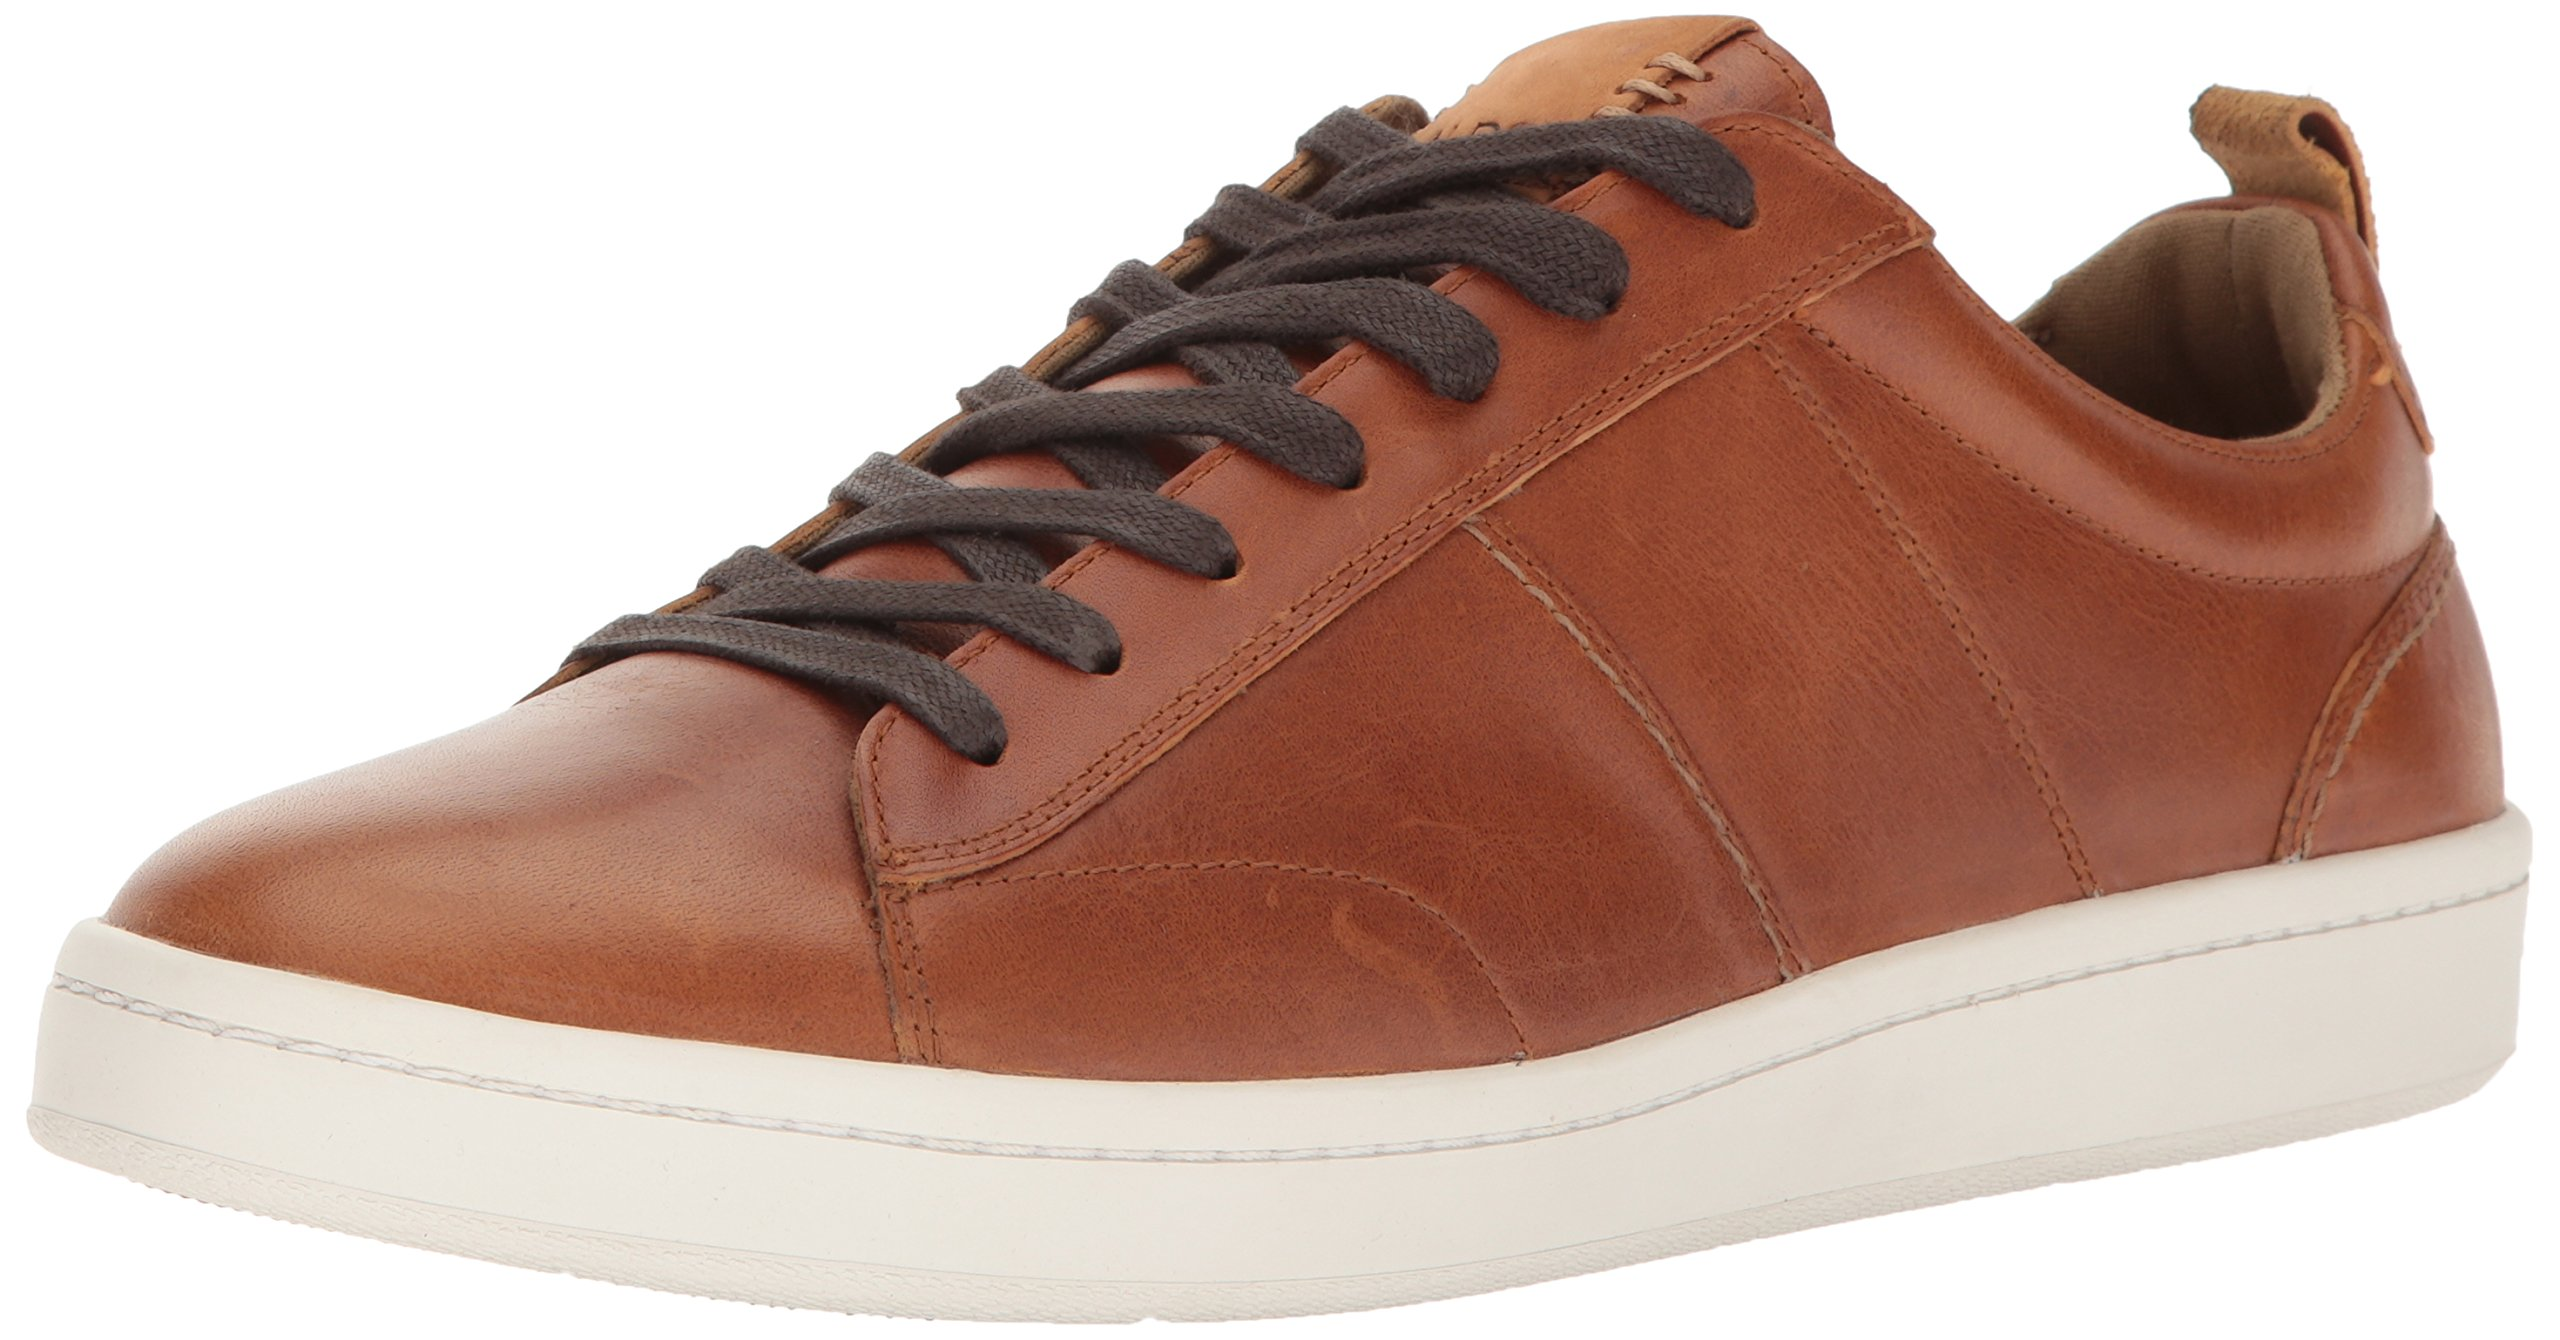 Aldo Men's Giffoni Fashion Sneaker, Camel, 9.5 D US